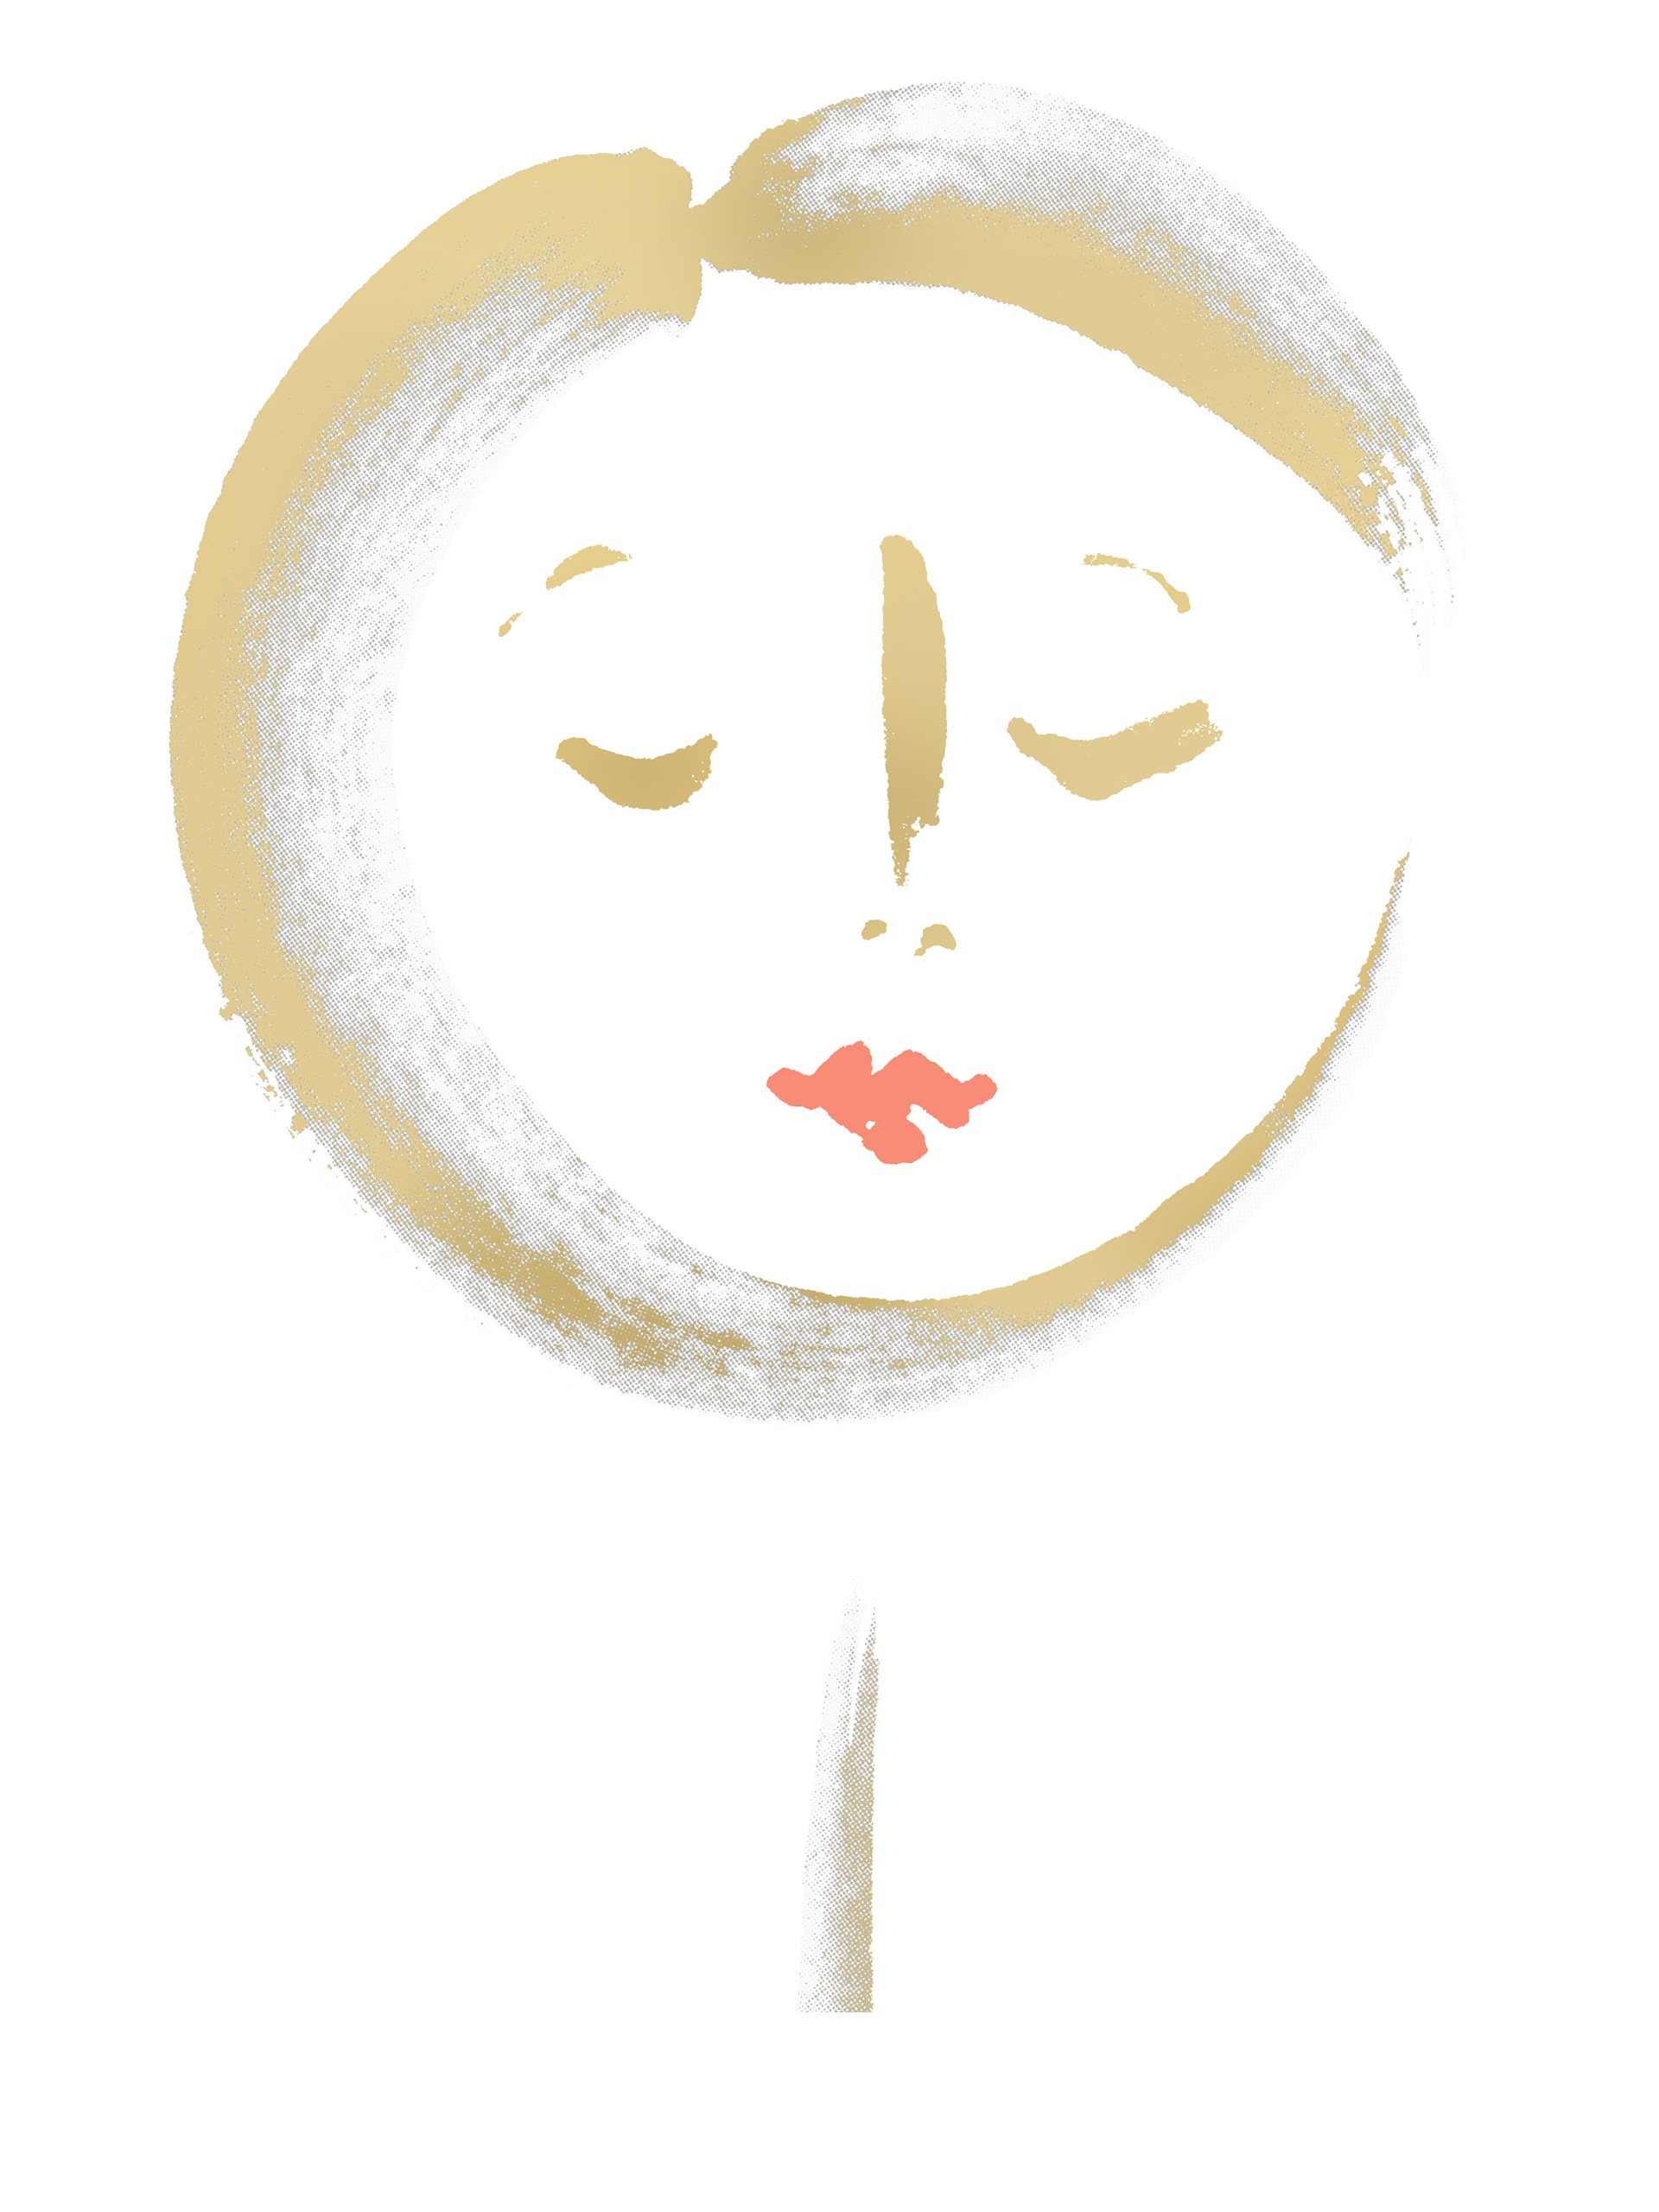 Silene in gold white with coral lips